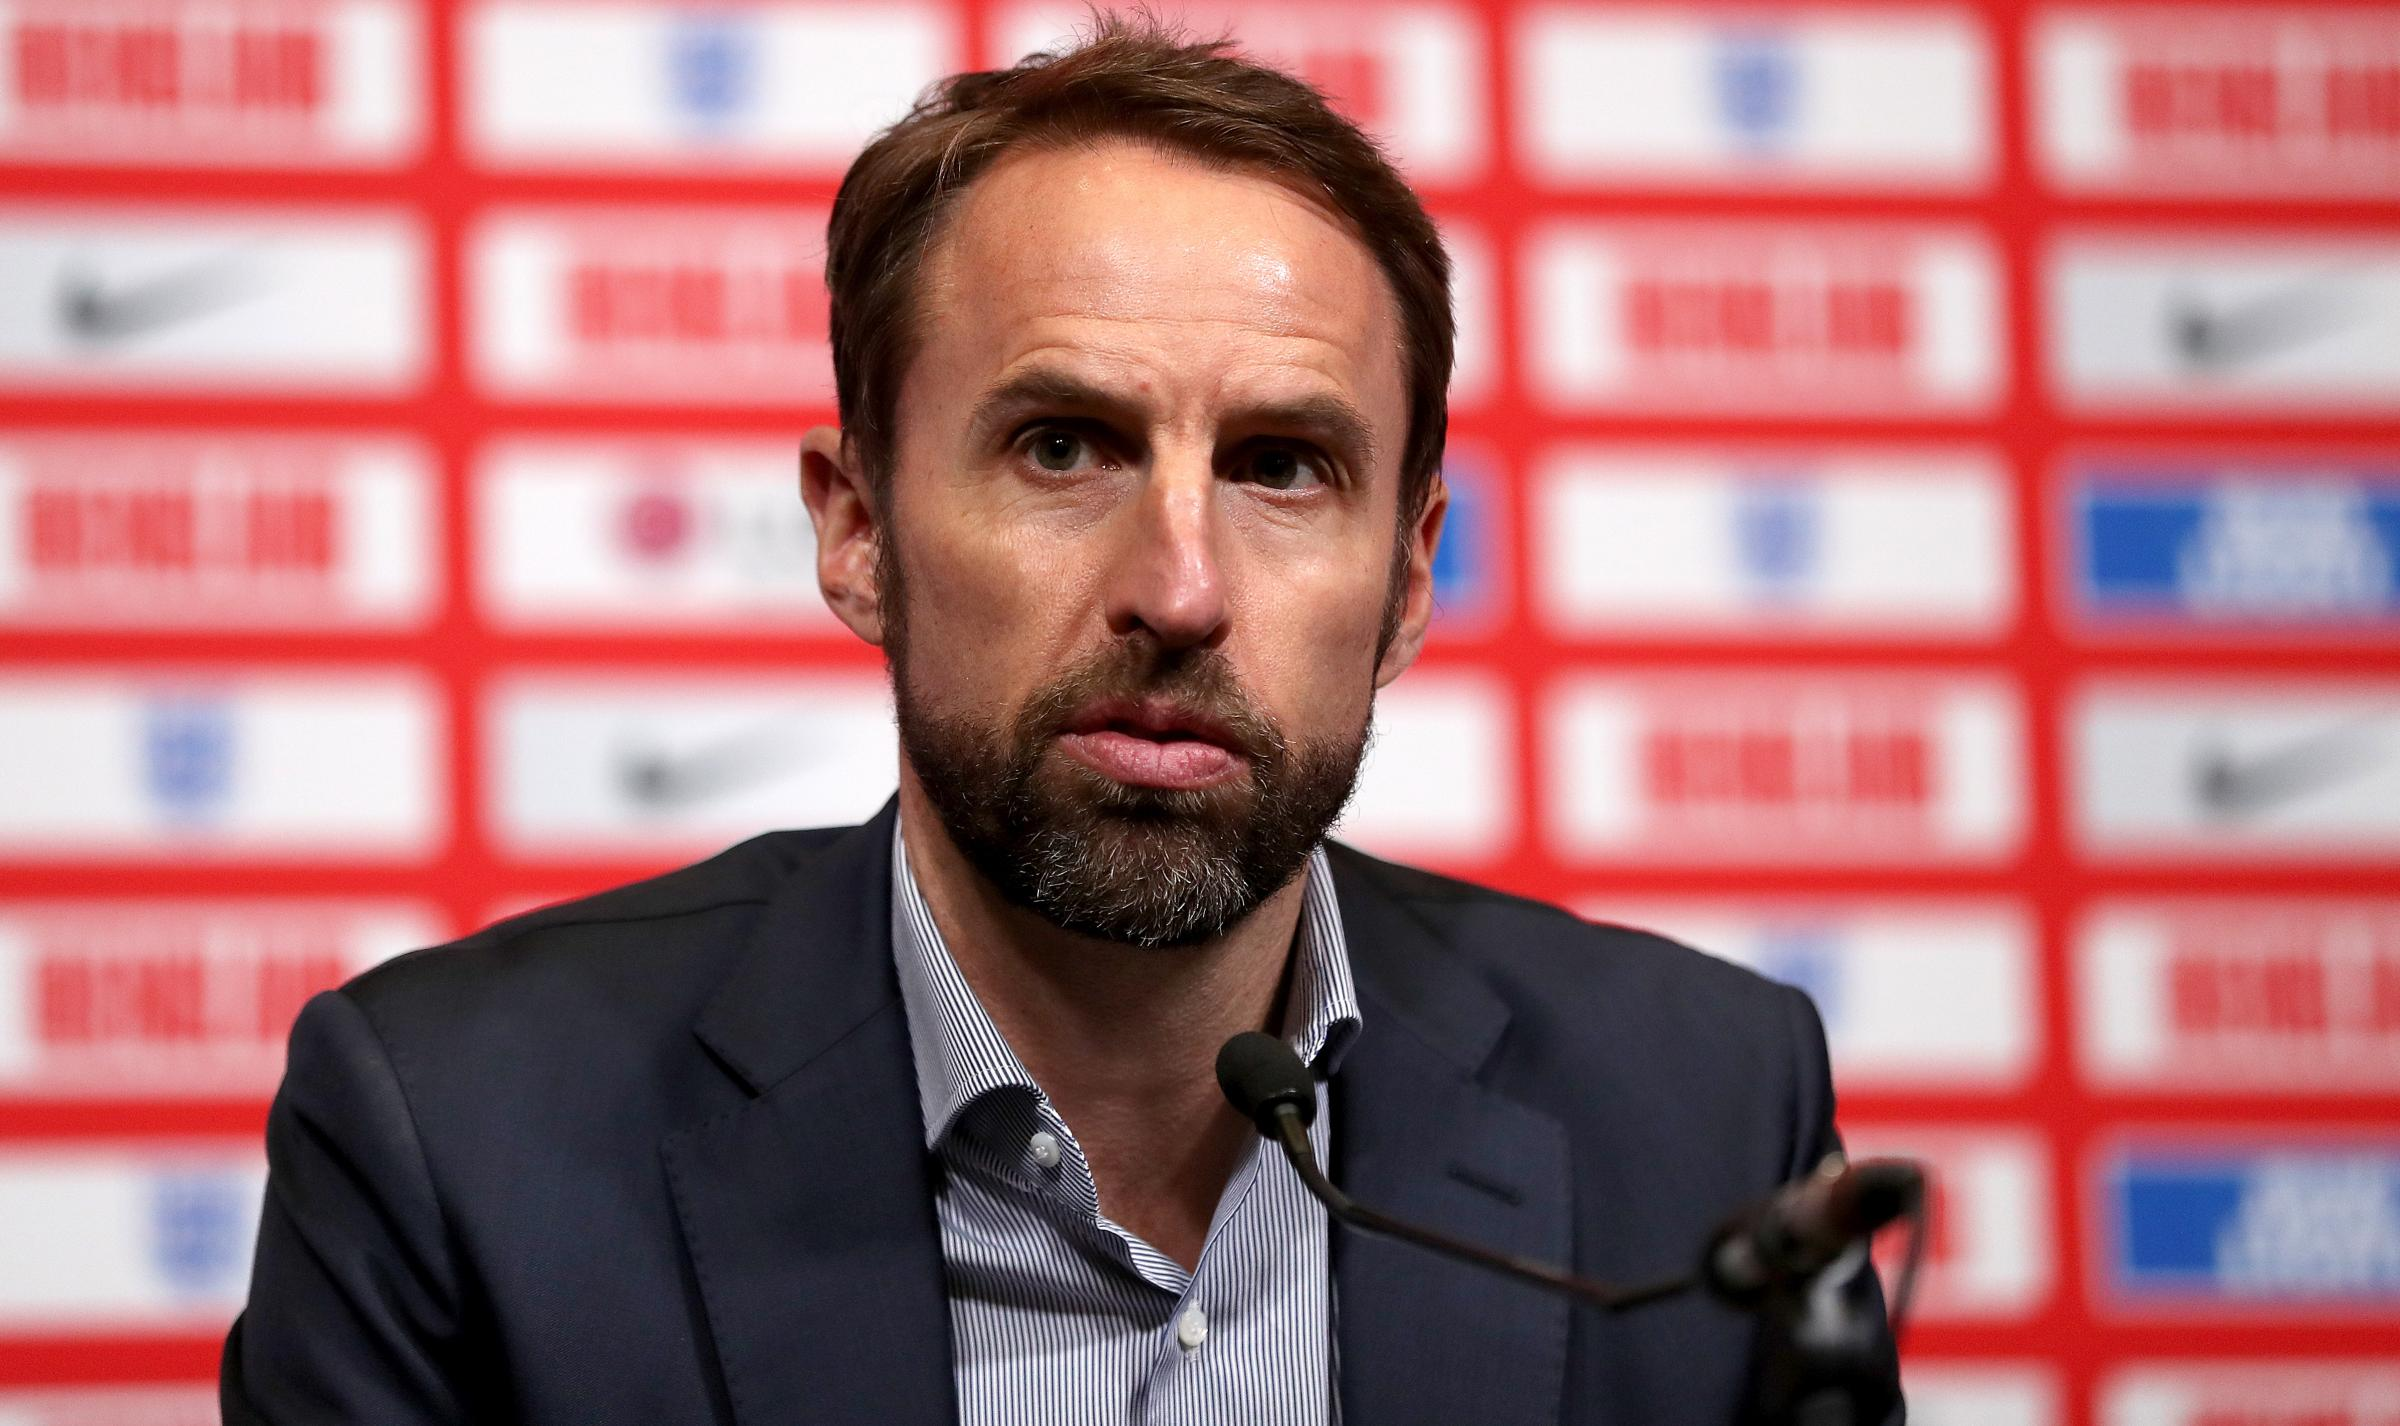 Gareth Southgate has named a 27-man England squad